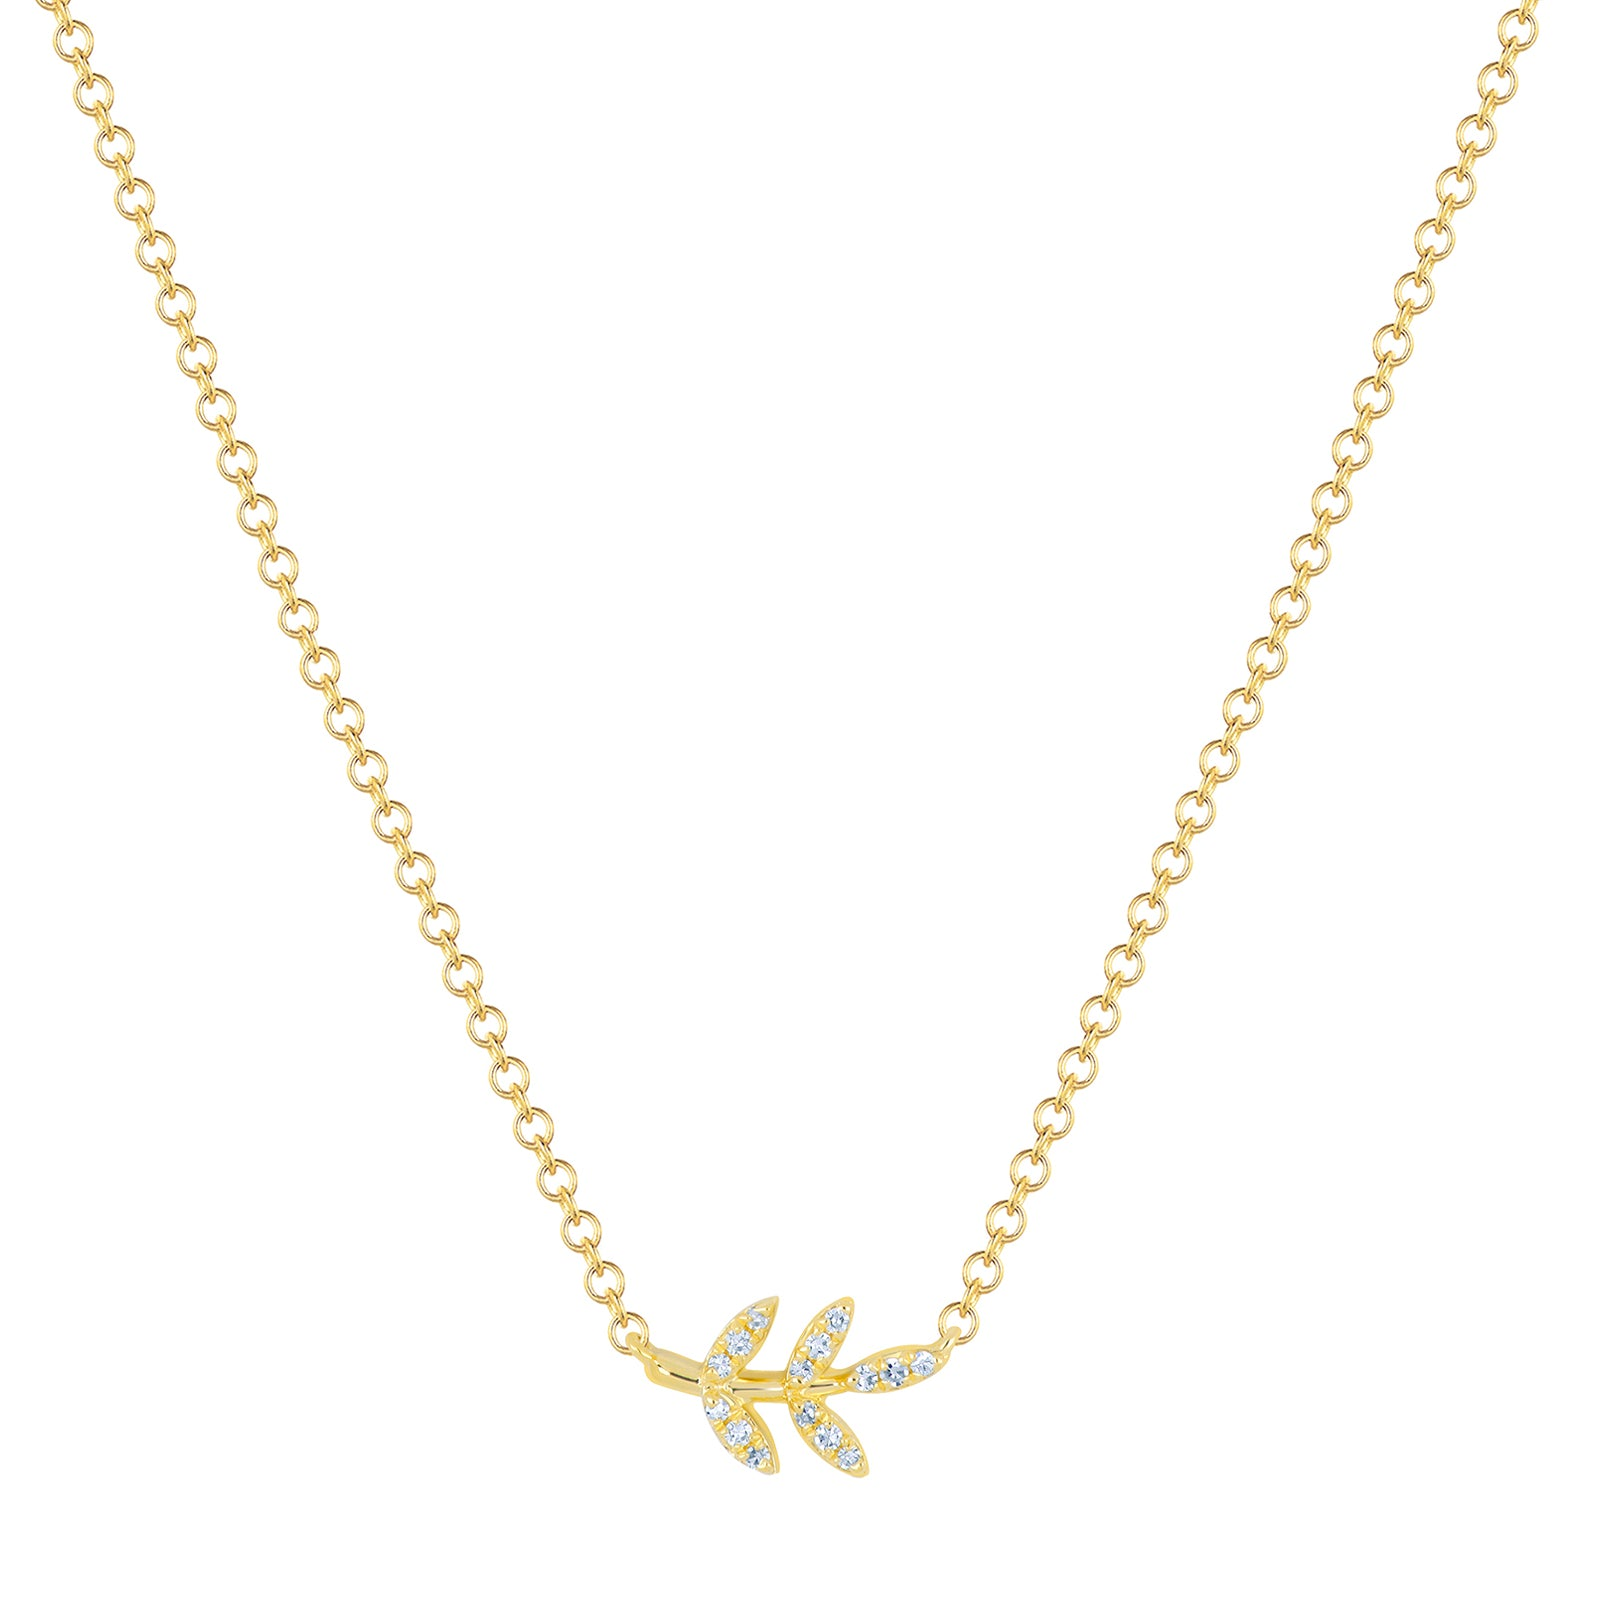 EF Collection Leaf Necklace - Yellow Gold - Necklaces - Broken English Jewelry